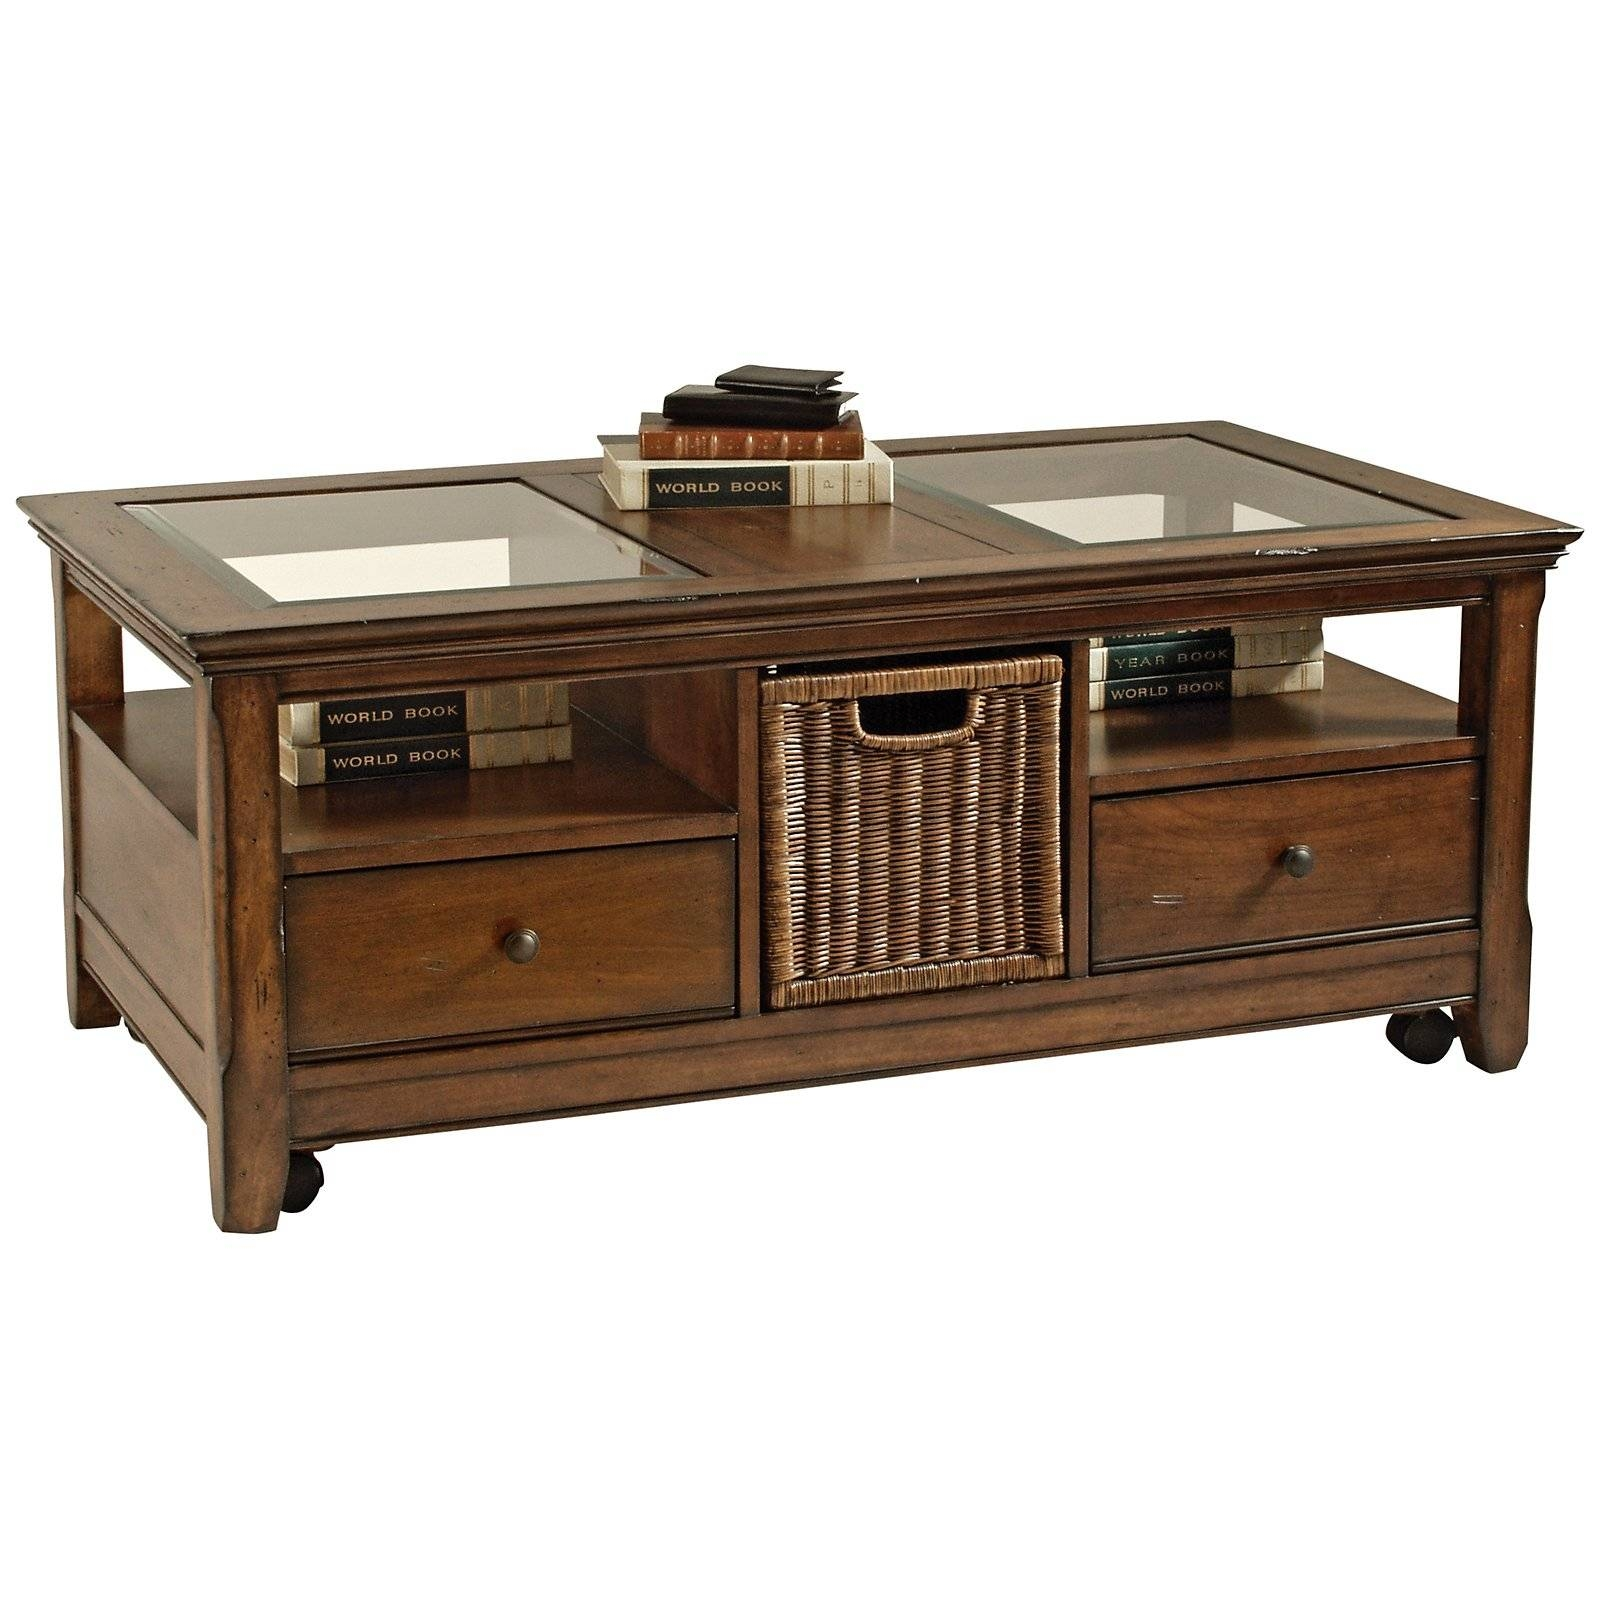 Get Your Different Furniture Of Coffee Table With Storage inside Wooden Storage Coffee Tables (Image 14 of 30)